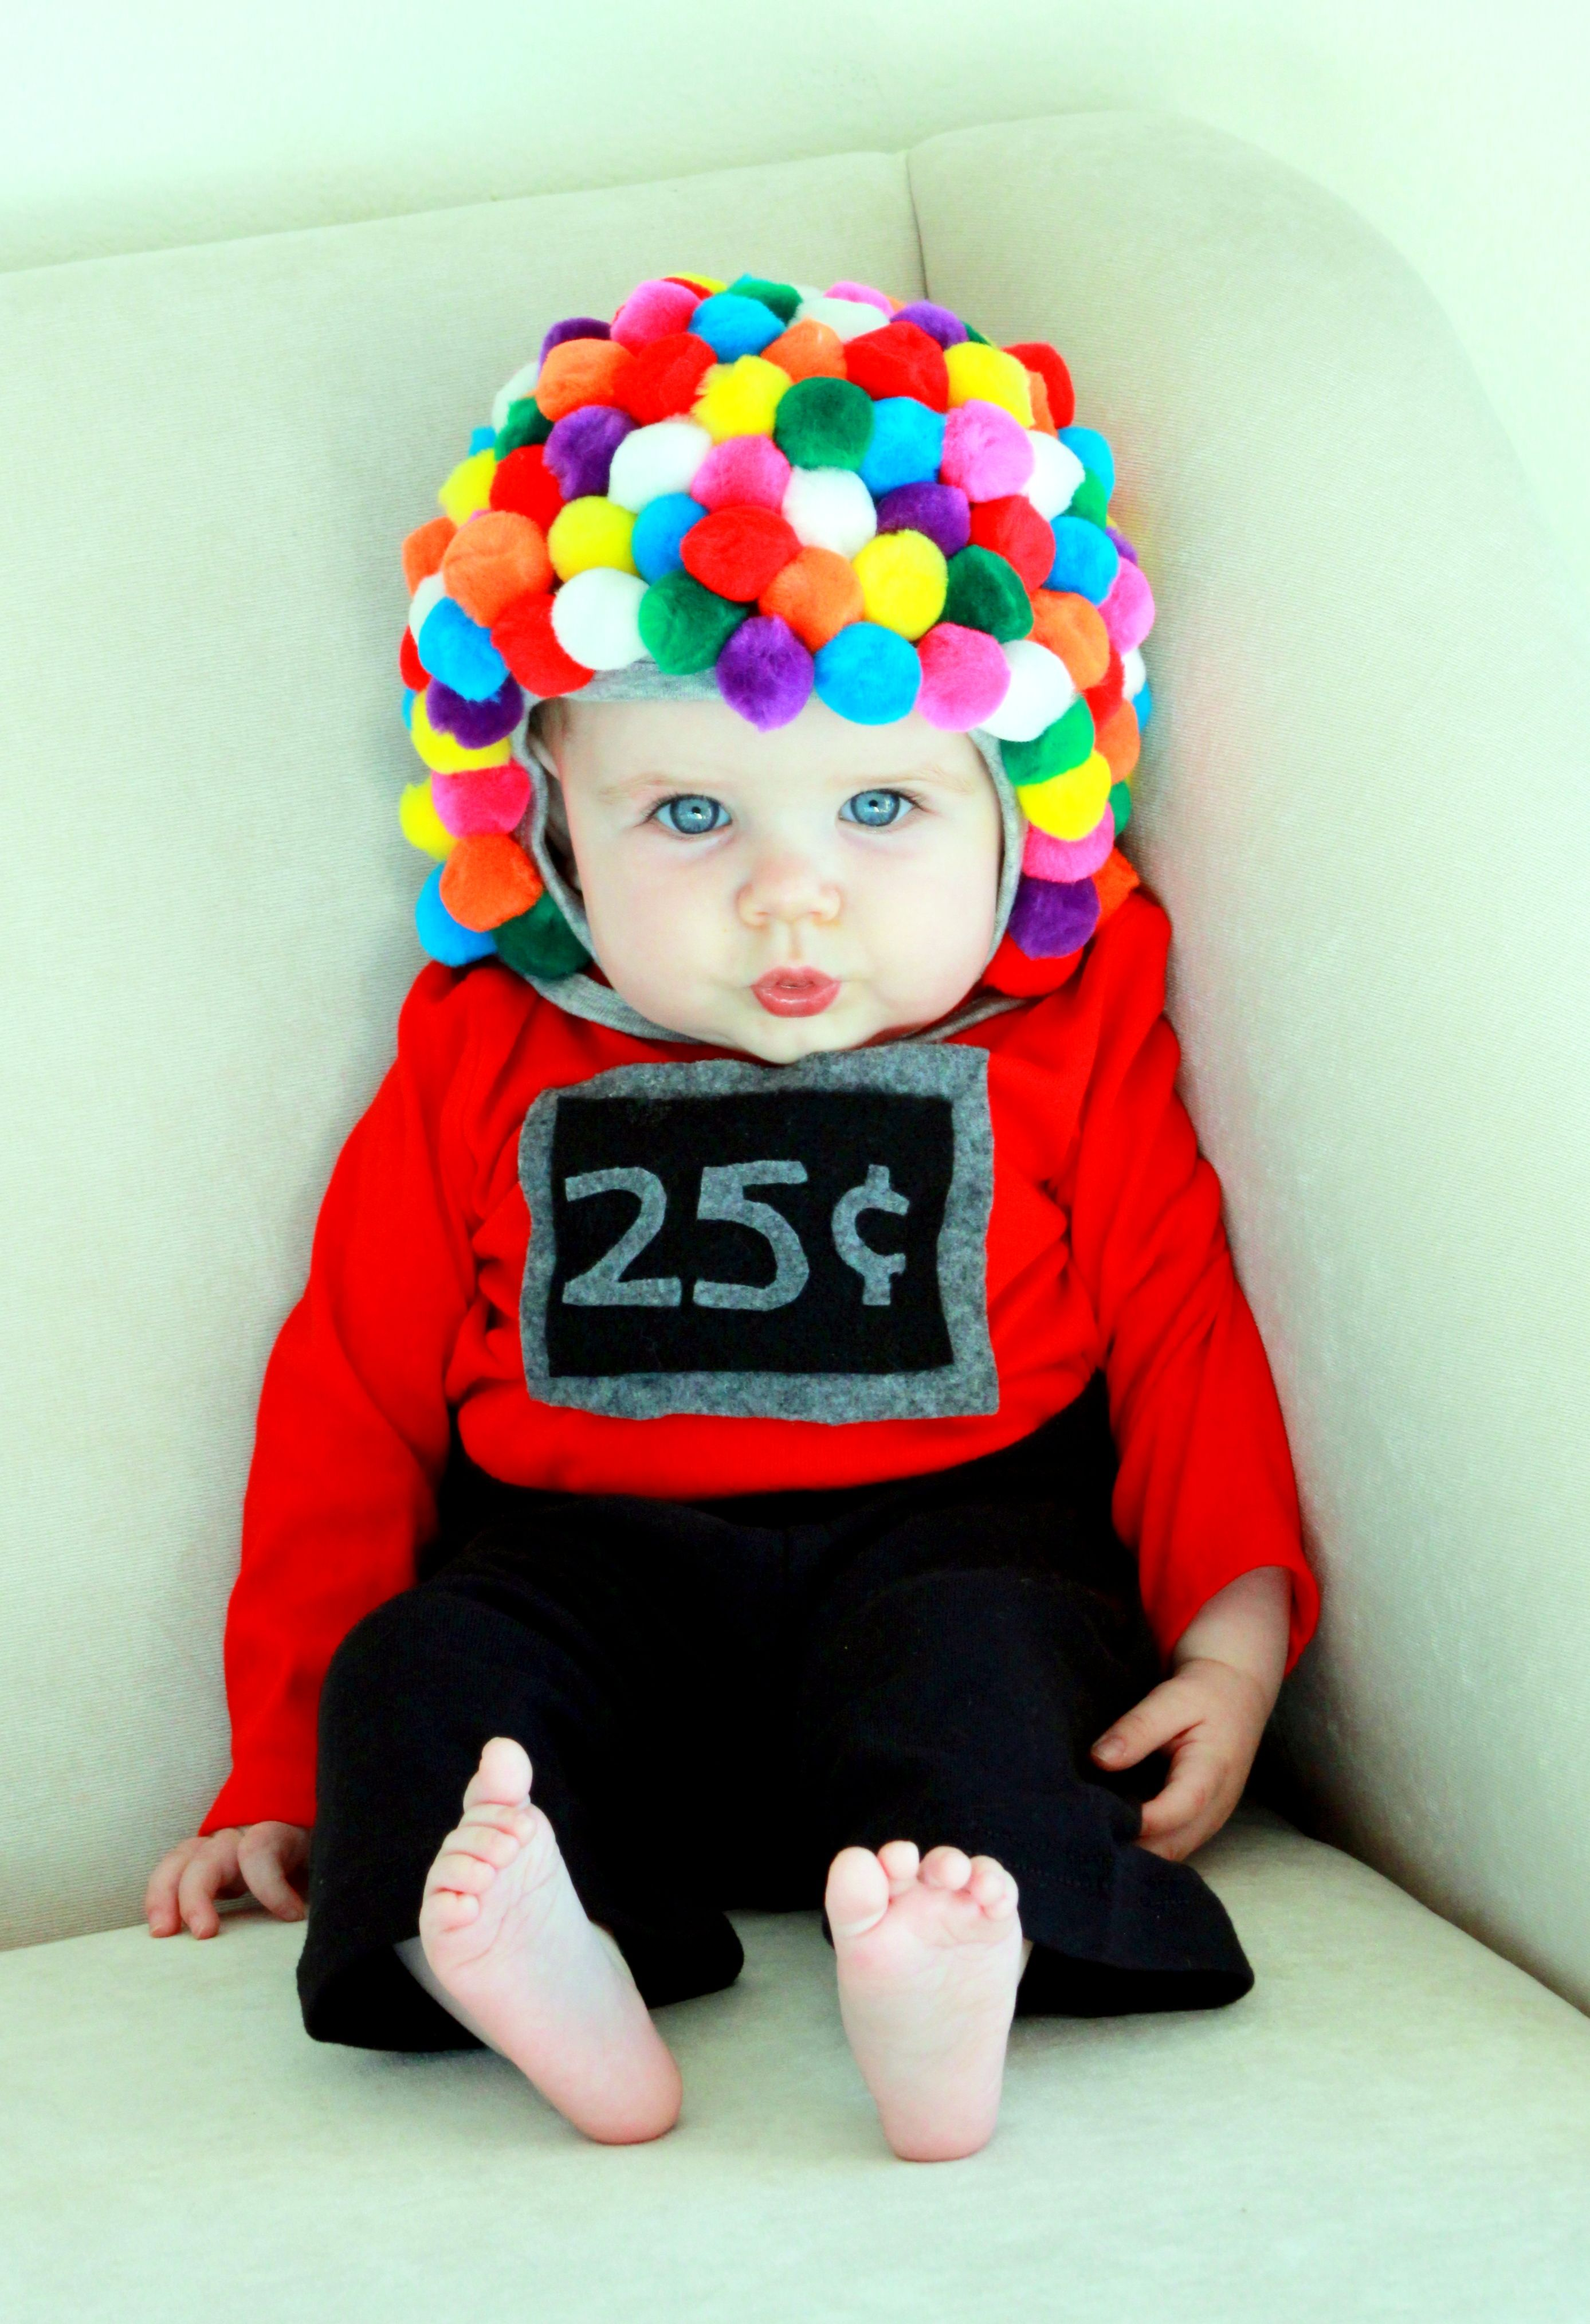 My babyu0027s first Halloween- sheu0027s going to be a gumball machine! I used a  sc 1 st  Pinterest & My babyu0027s first Halloween- sheu0027s going to be a gumball machine! I ...